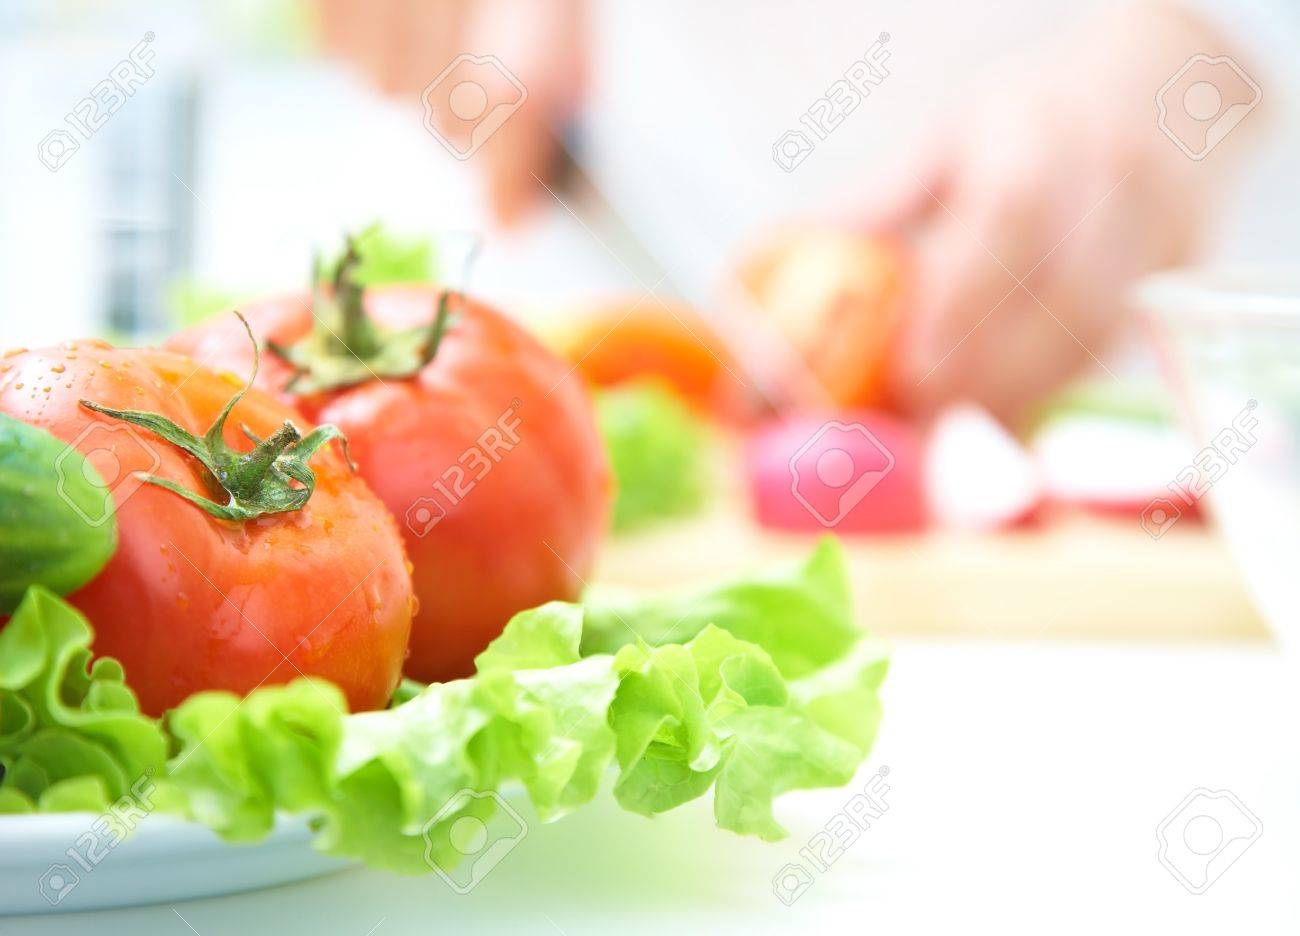 Close-up of salads with fresh vegetables Stock Photo - 10229368